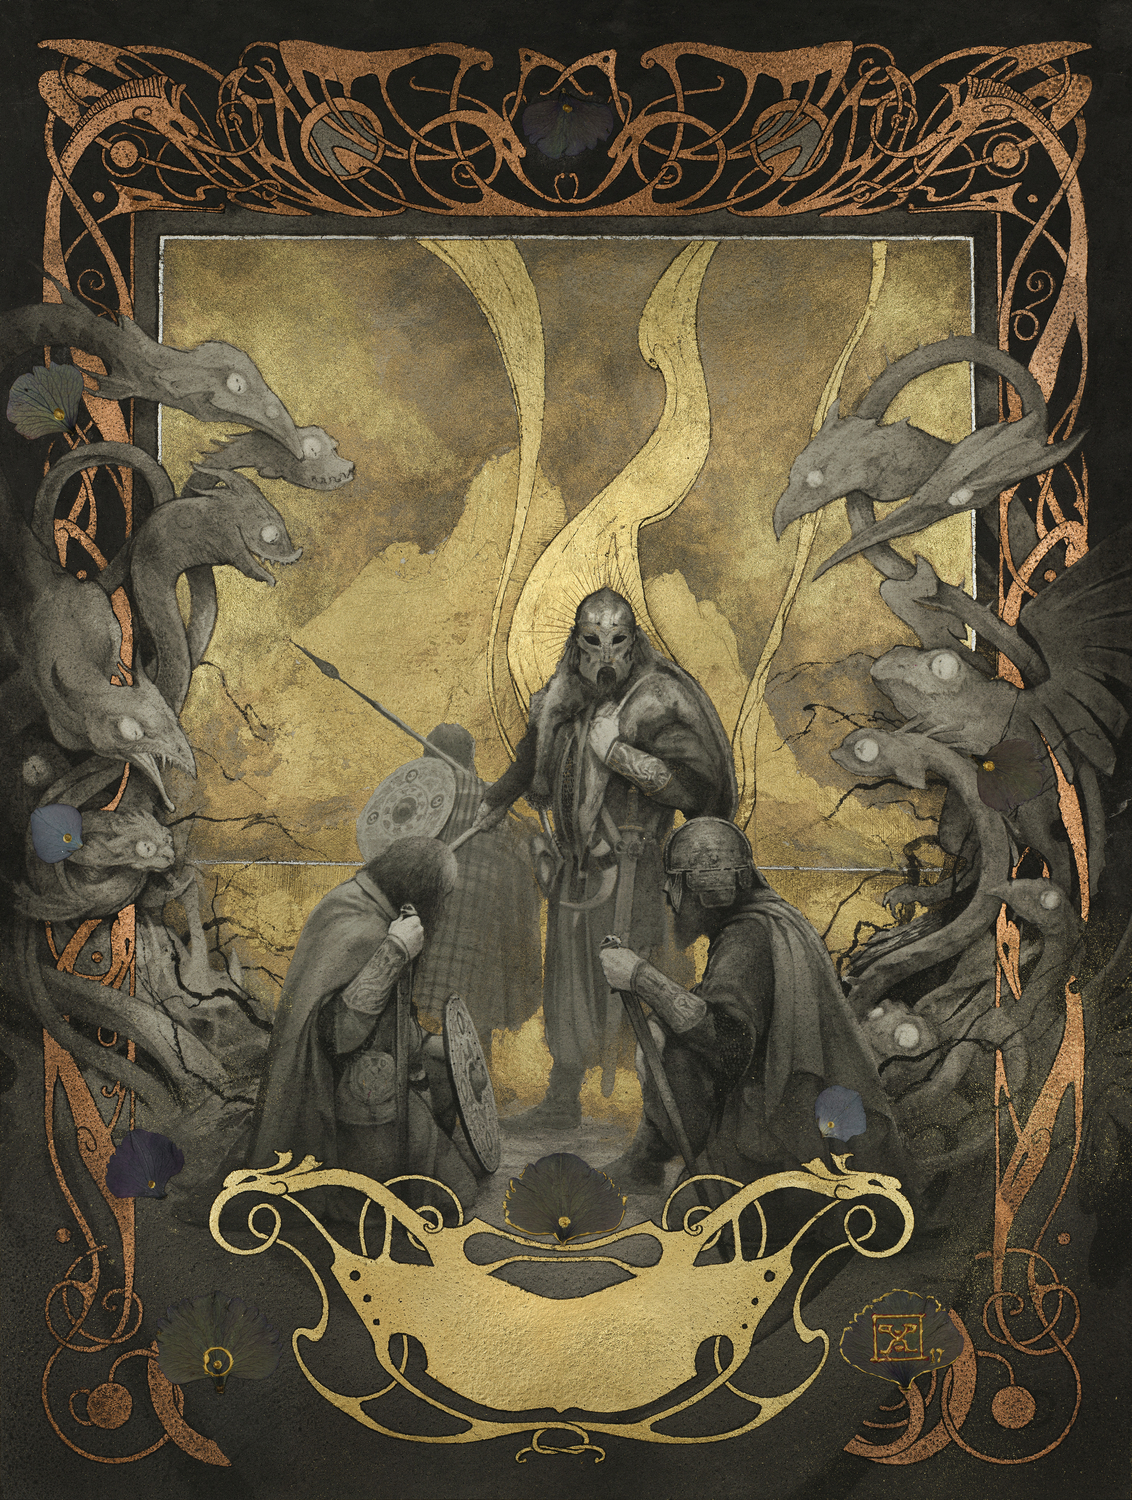 Beowulf - Grendel's Mother Mare Artwork by Yoann Lossel